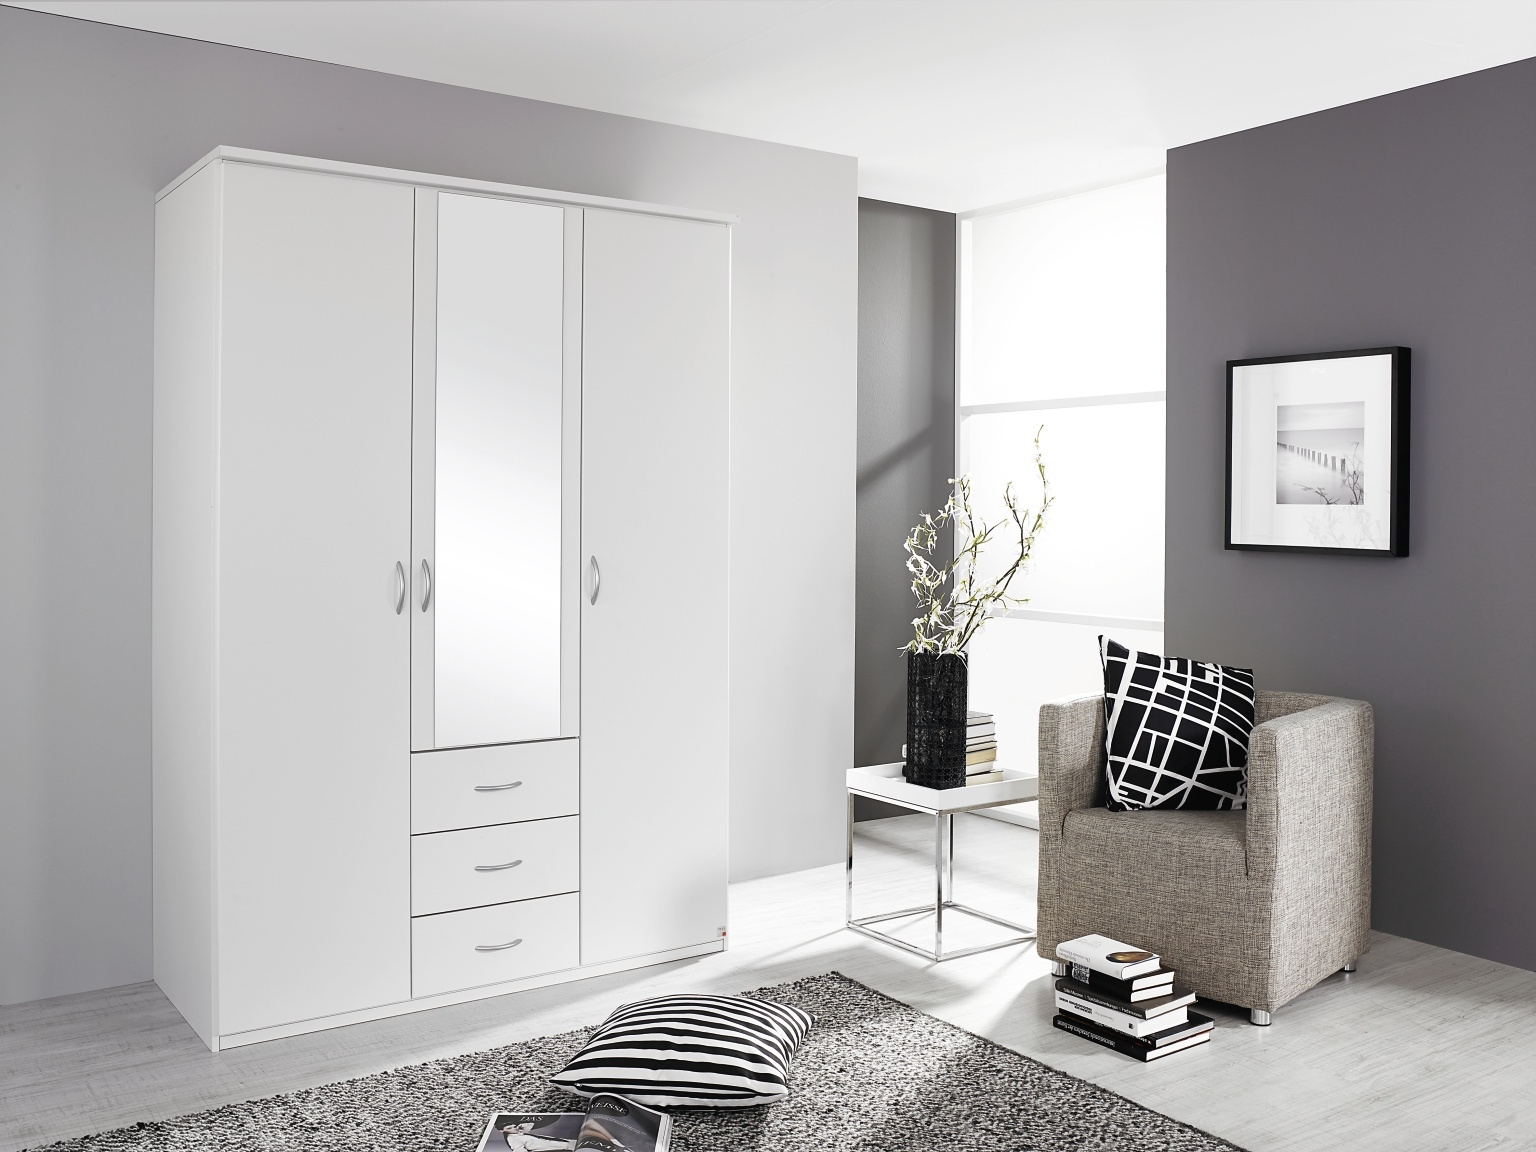 Rauch Blitz Alpine White 2 Door Wardrobe